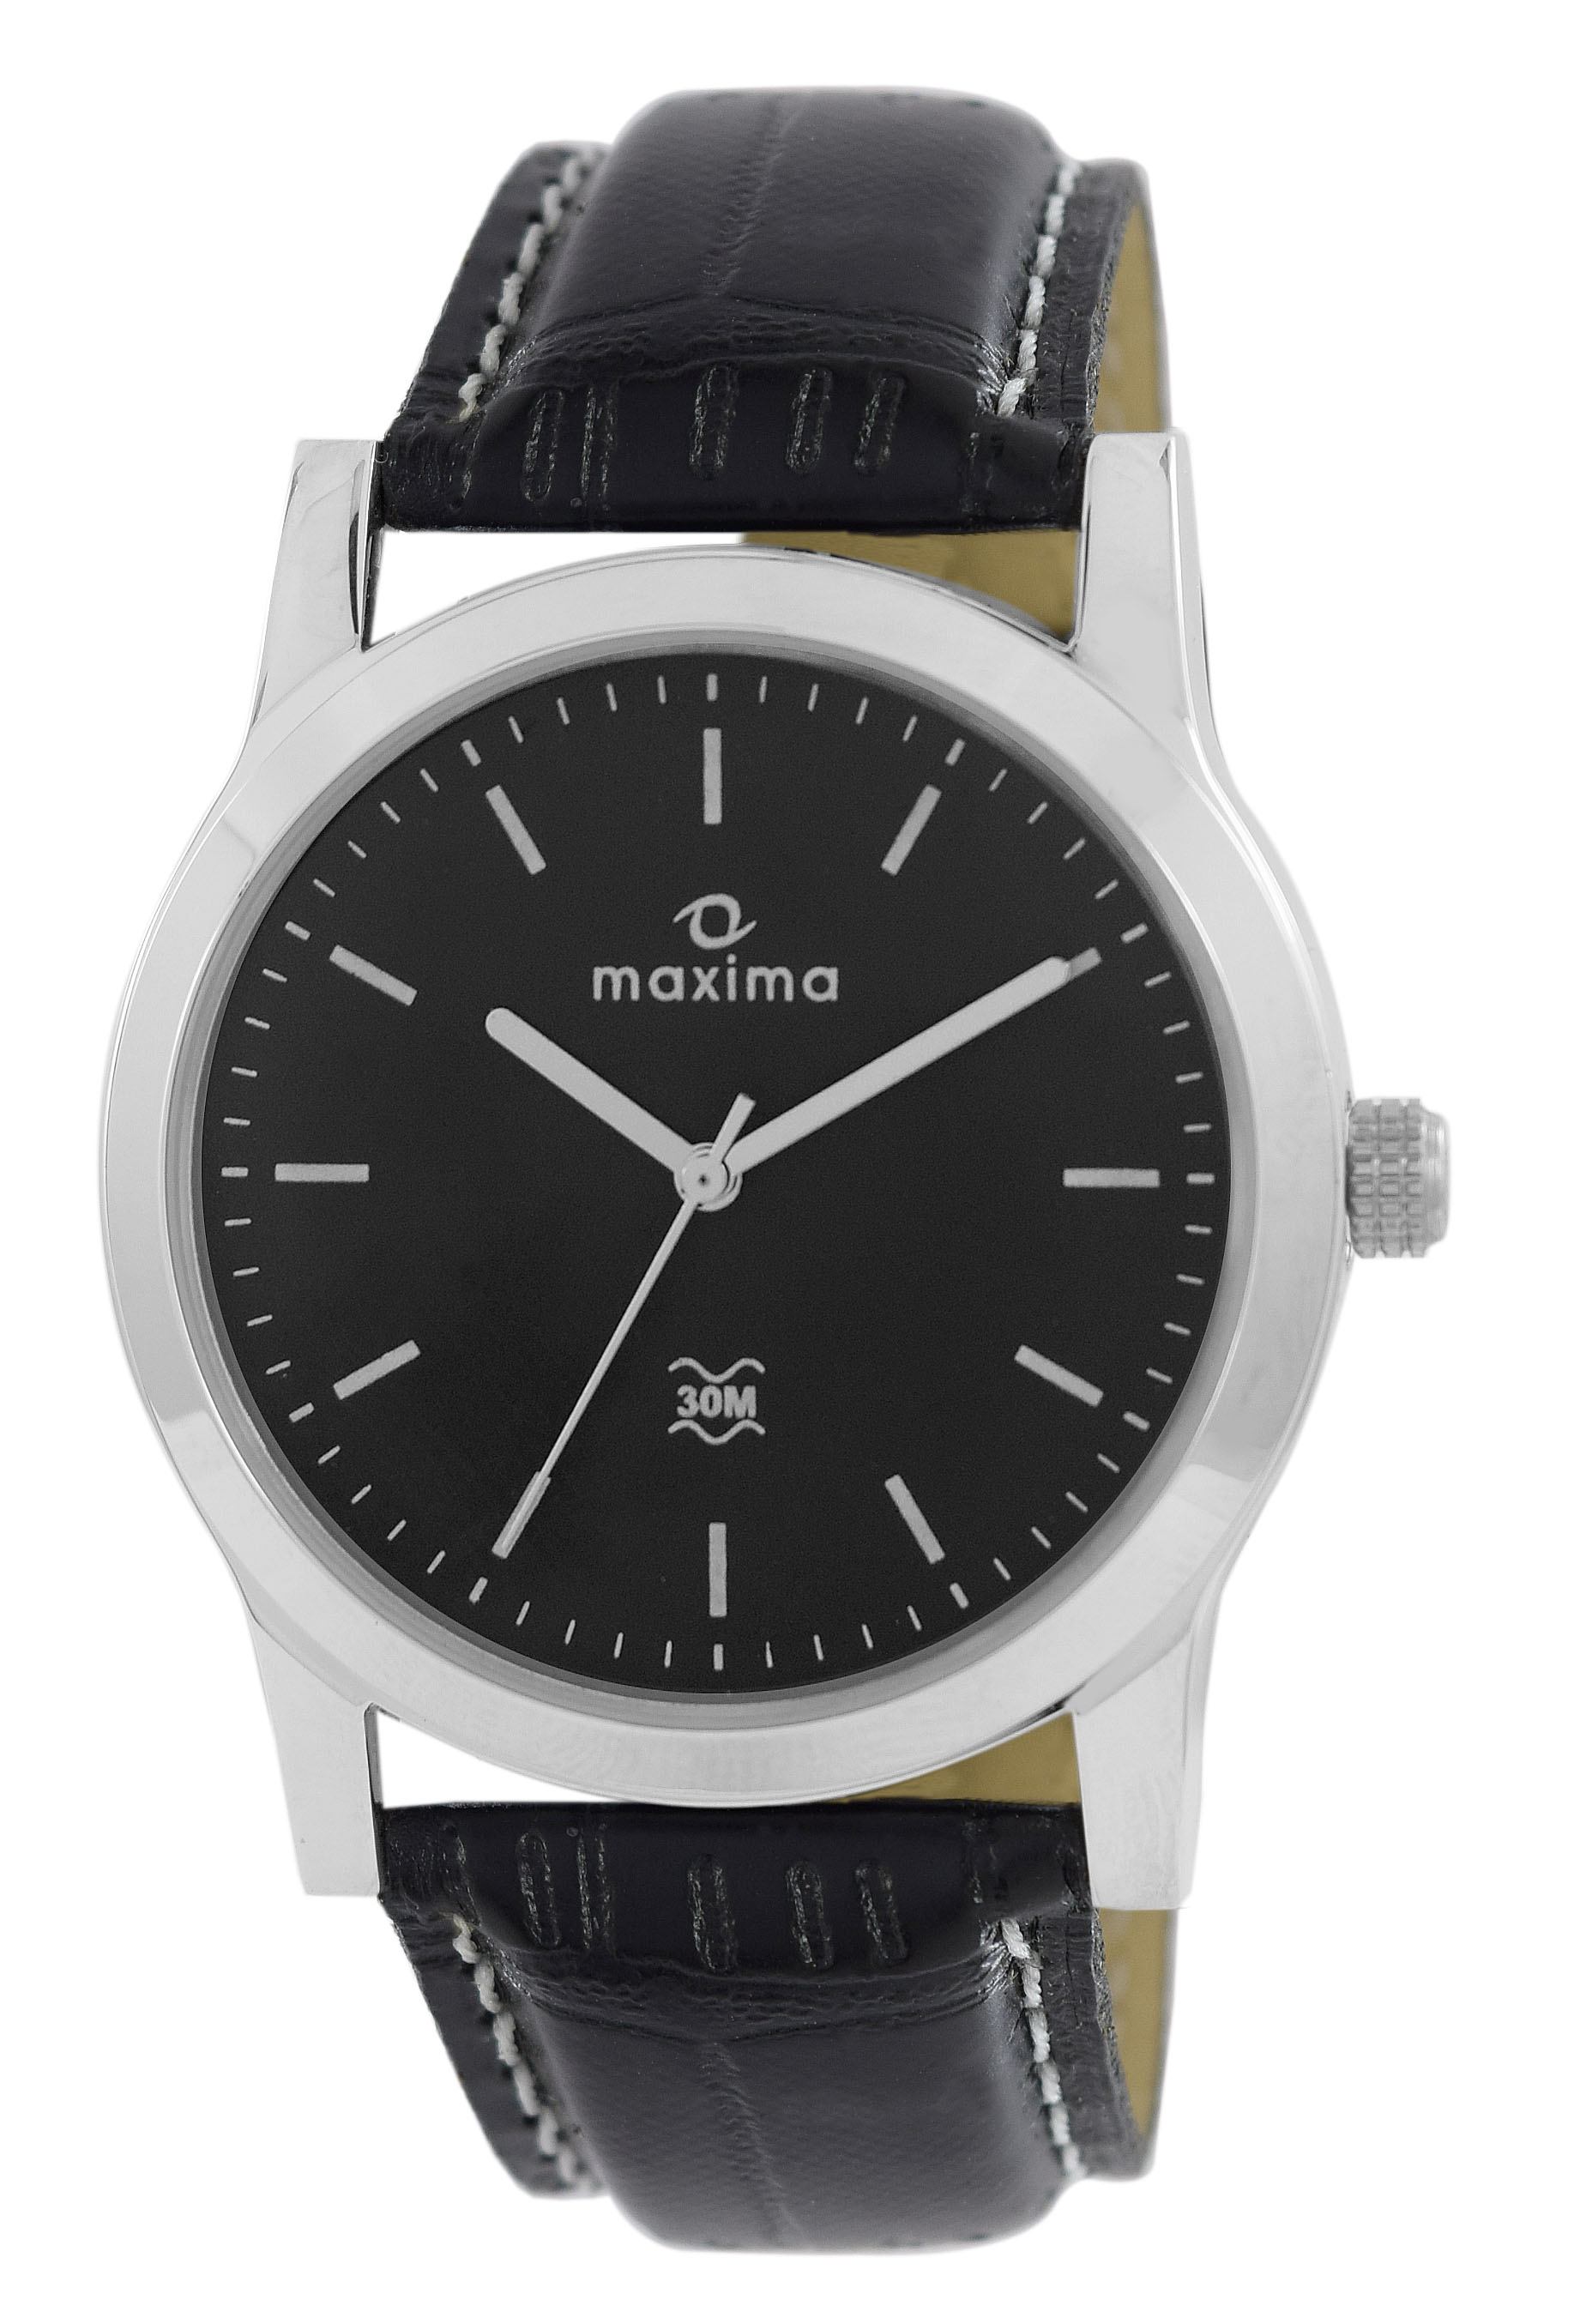 all white watches background watch maxima images